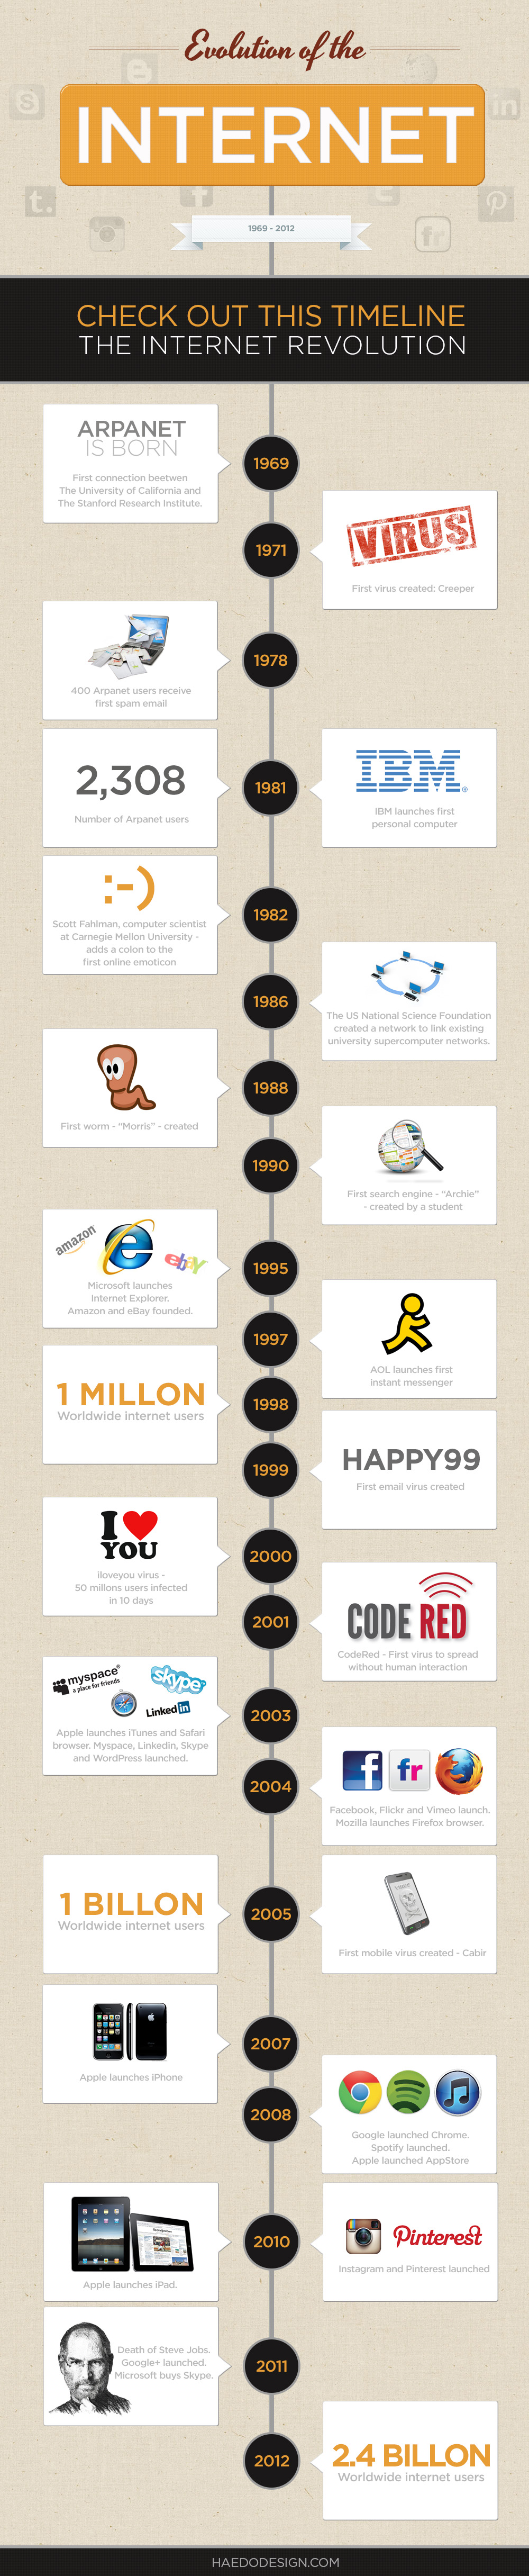 evolution-of-the-internet_5182c455c540a